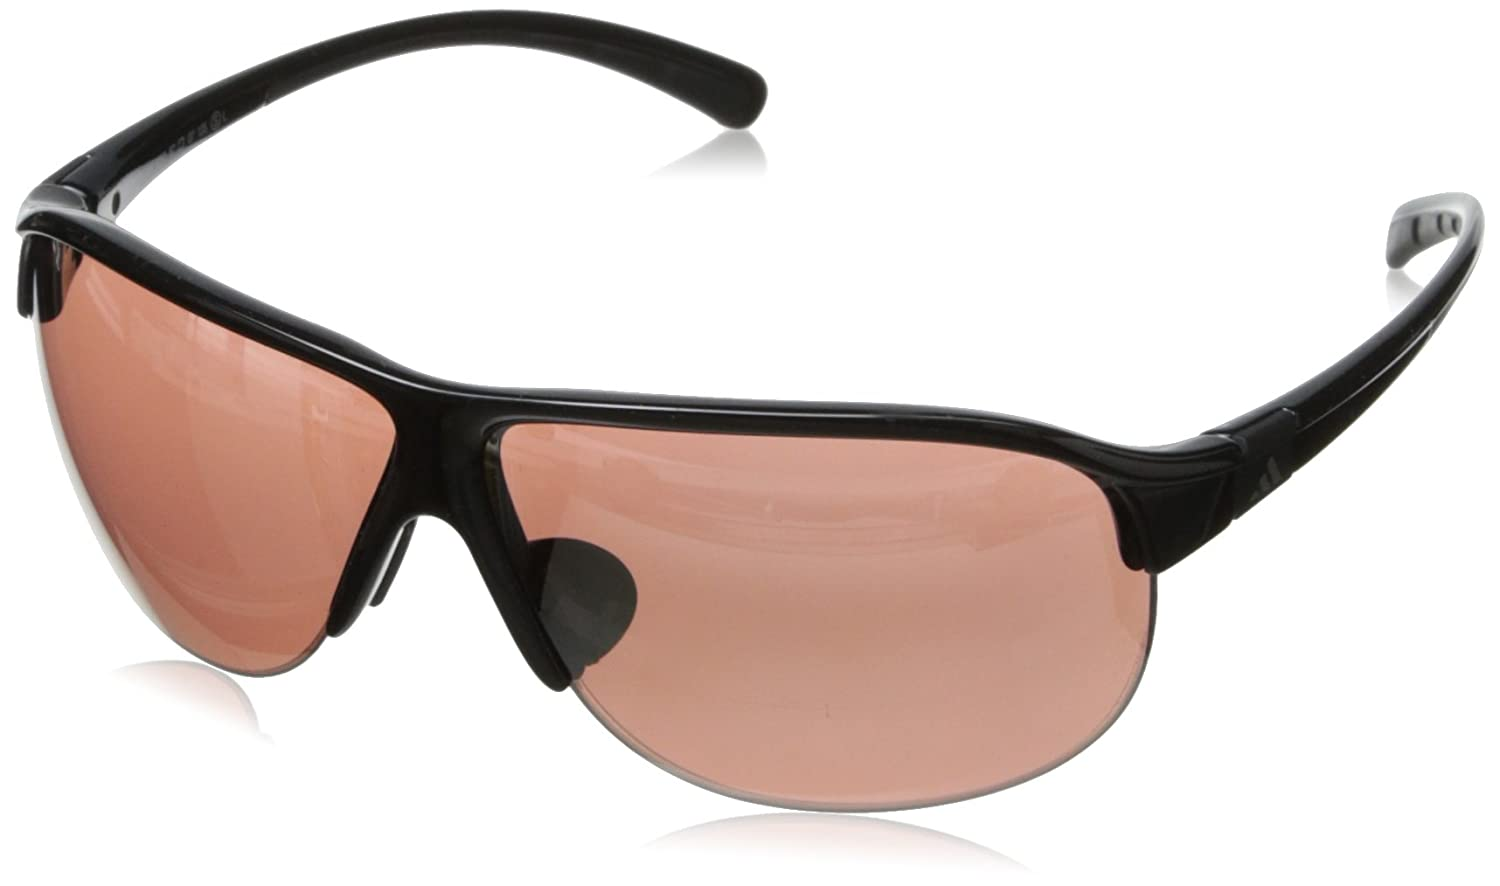 Sportbrille Tourpro S Shiny Black-Grey / LST Active